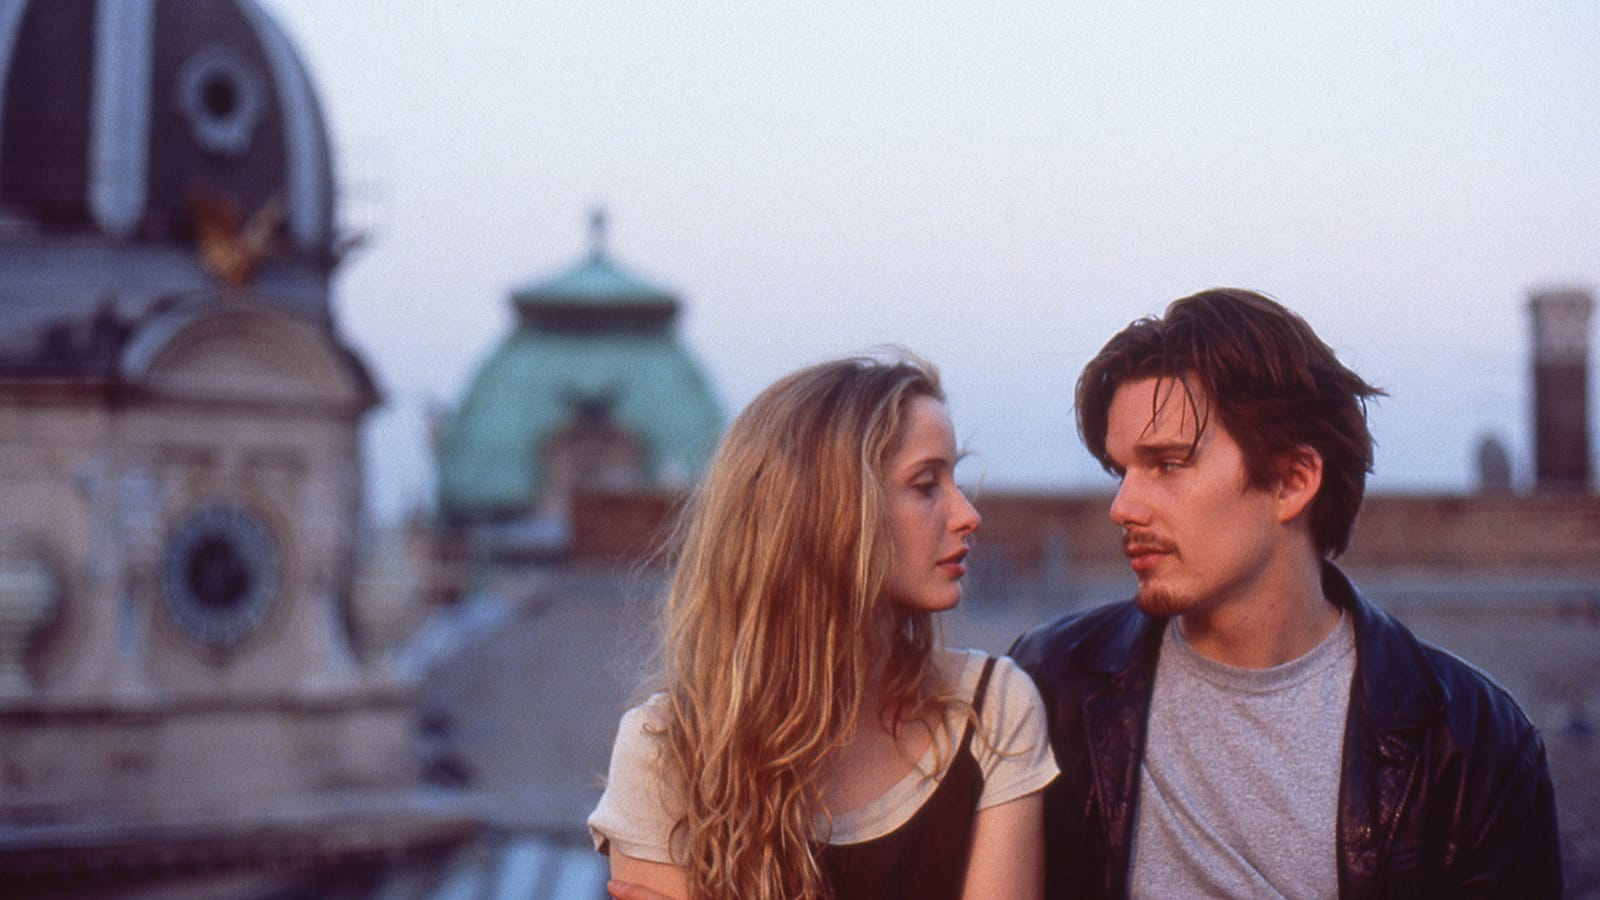 Before Sunrise, the first instalment in the Before trilogy